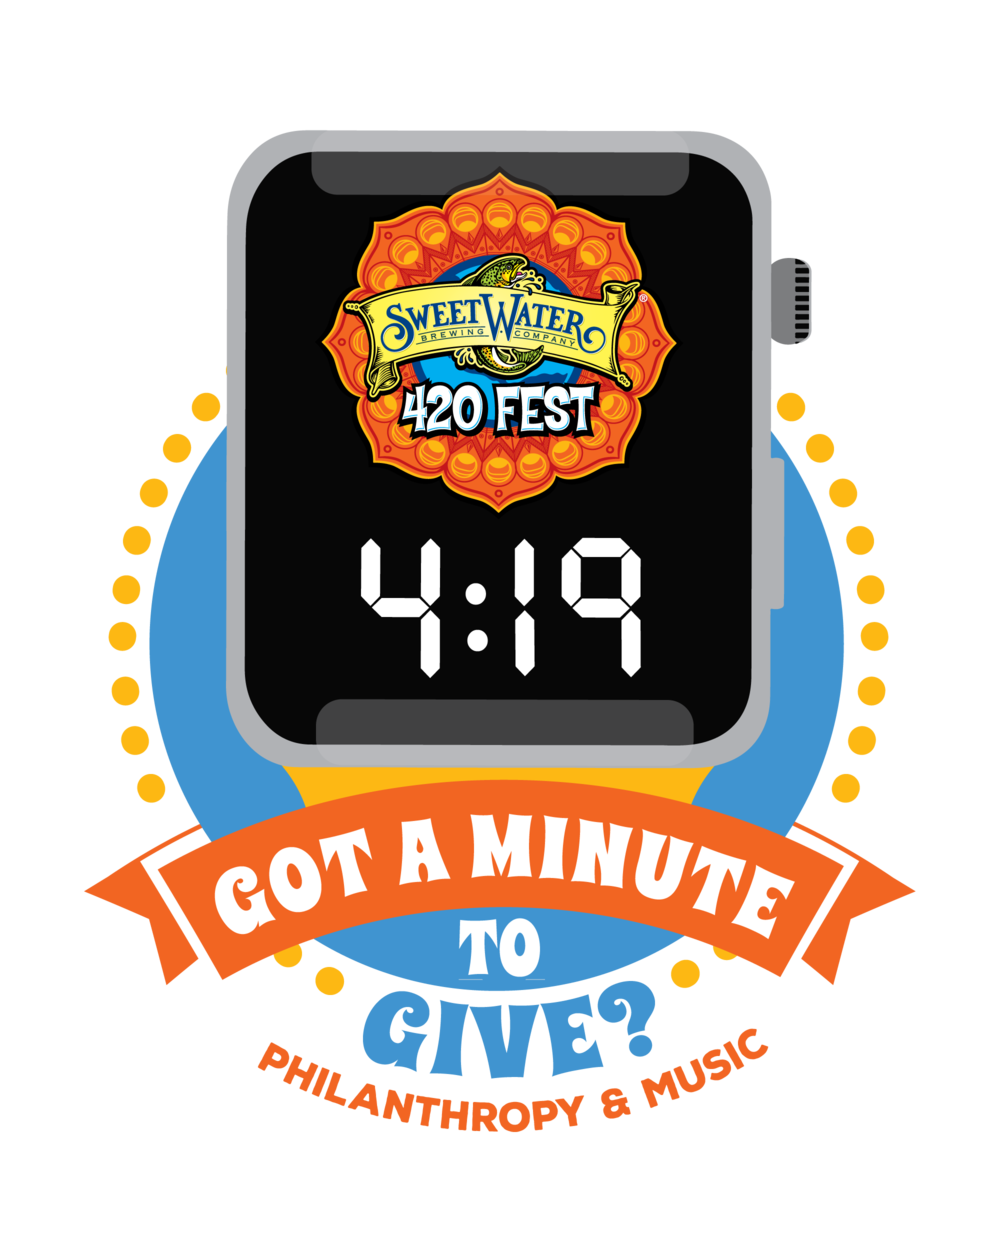 4:19...Got A Minute to Give? Charity Auction - Inside Out wTnS host & 'Your Rocktioneer' Seth Weiner will be hosting an upcoming live (and silent) auction at the SweetWater 420 Festival in Atlanta, GA on April 20-22,2018. Seth will be also coordinating live games, Rob will be on site for live podcast interviews and some of our Osiris friends are traveling to Atlanta to share in the fun at the SweetWater Experience Tent for the weekend!SweetWater 420 Fest Band Charity Auction benefiting SweetWater 420 Fest performing artists' charity of choice.Auction items include concert tickets, signed memorabilia, photos, meet & greet with artists and more. Details on these auction items and exciting live onsite experiences during 420 Fest weekend coming soon. Mobile bidding begins April 17 and lasts through 420 Fest weekend April 20-22 available to 420 Fest patrons and anyone with access to mobile platform.Bidding Platform Registration:Visit 420fest.auction-bid.orgMobile Registration: TEXT 420Fest to 24700The SweetWater 420 Fest Charity Auction is produced by Seth Weiner Your Rocktioneer, Georgia Auctioneer License Number: AU004320. Seth Weiner combines his comedic and engaging on-stage personality with the traditional live-auctioneer excitement resulting in bidding amounts which often exceed expectations.